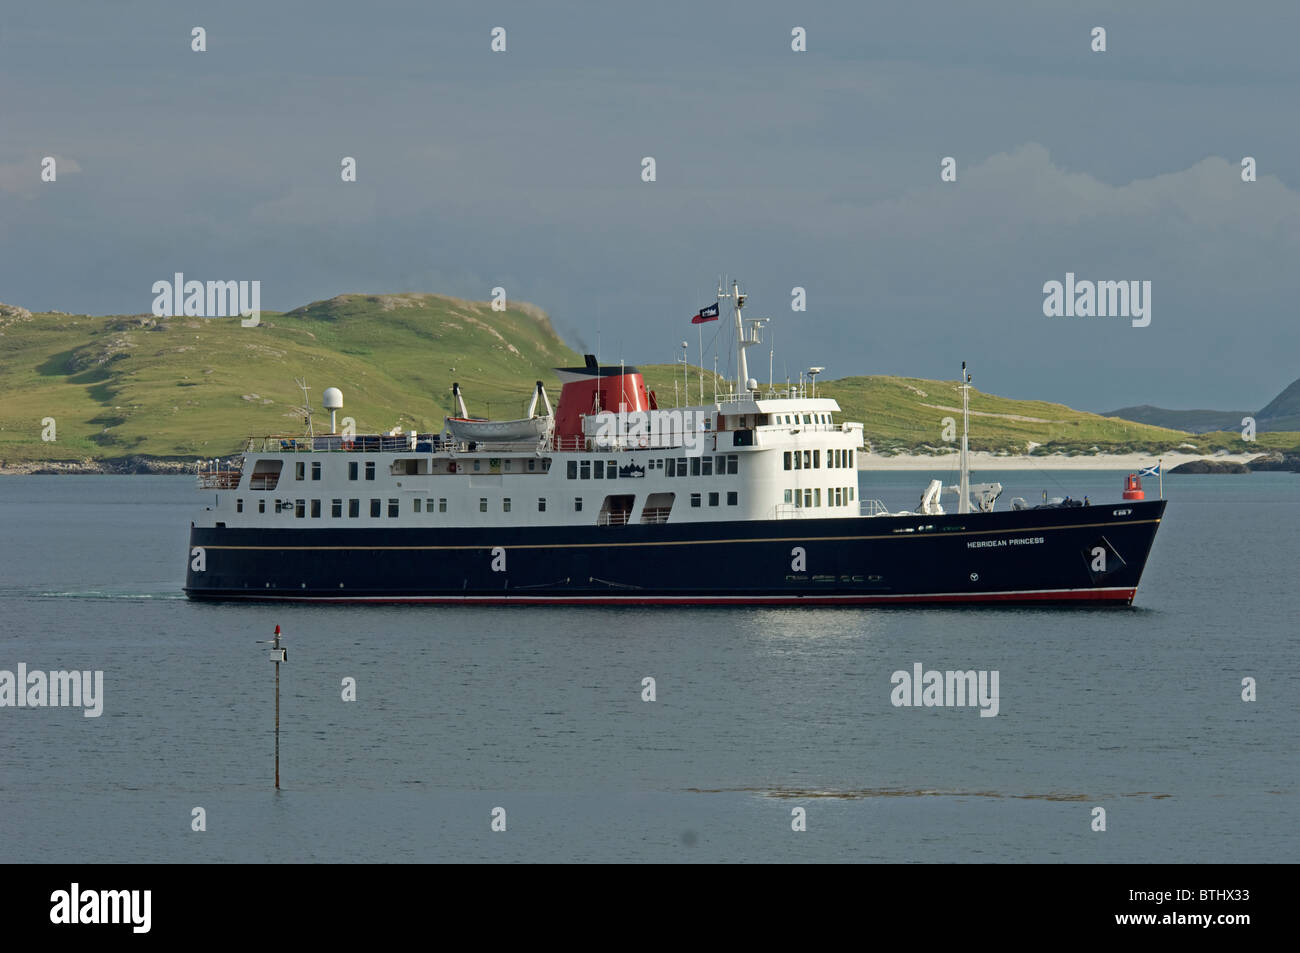 The Small Luxury Cruise ship arriving in Castlebay Isle of Barra, Outer Hebrides, Scotland.  SCO 6680 Stock Photo